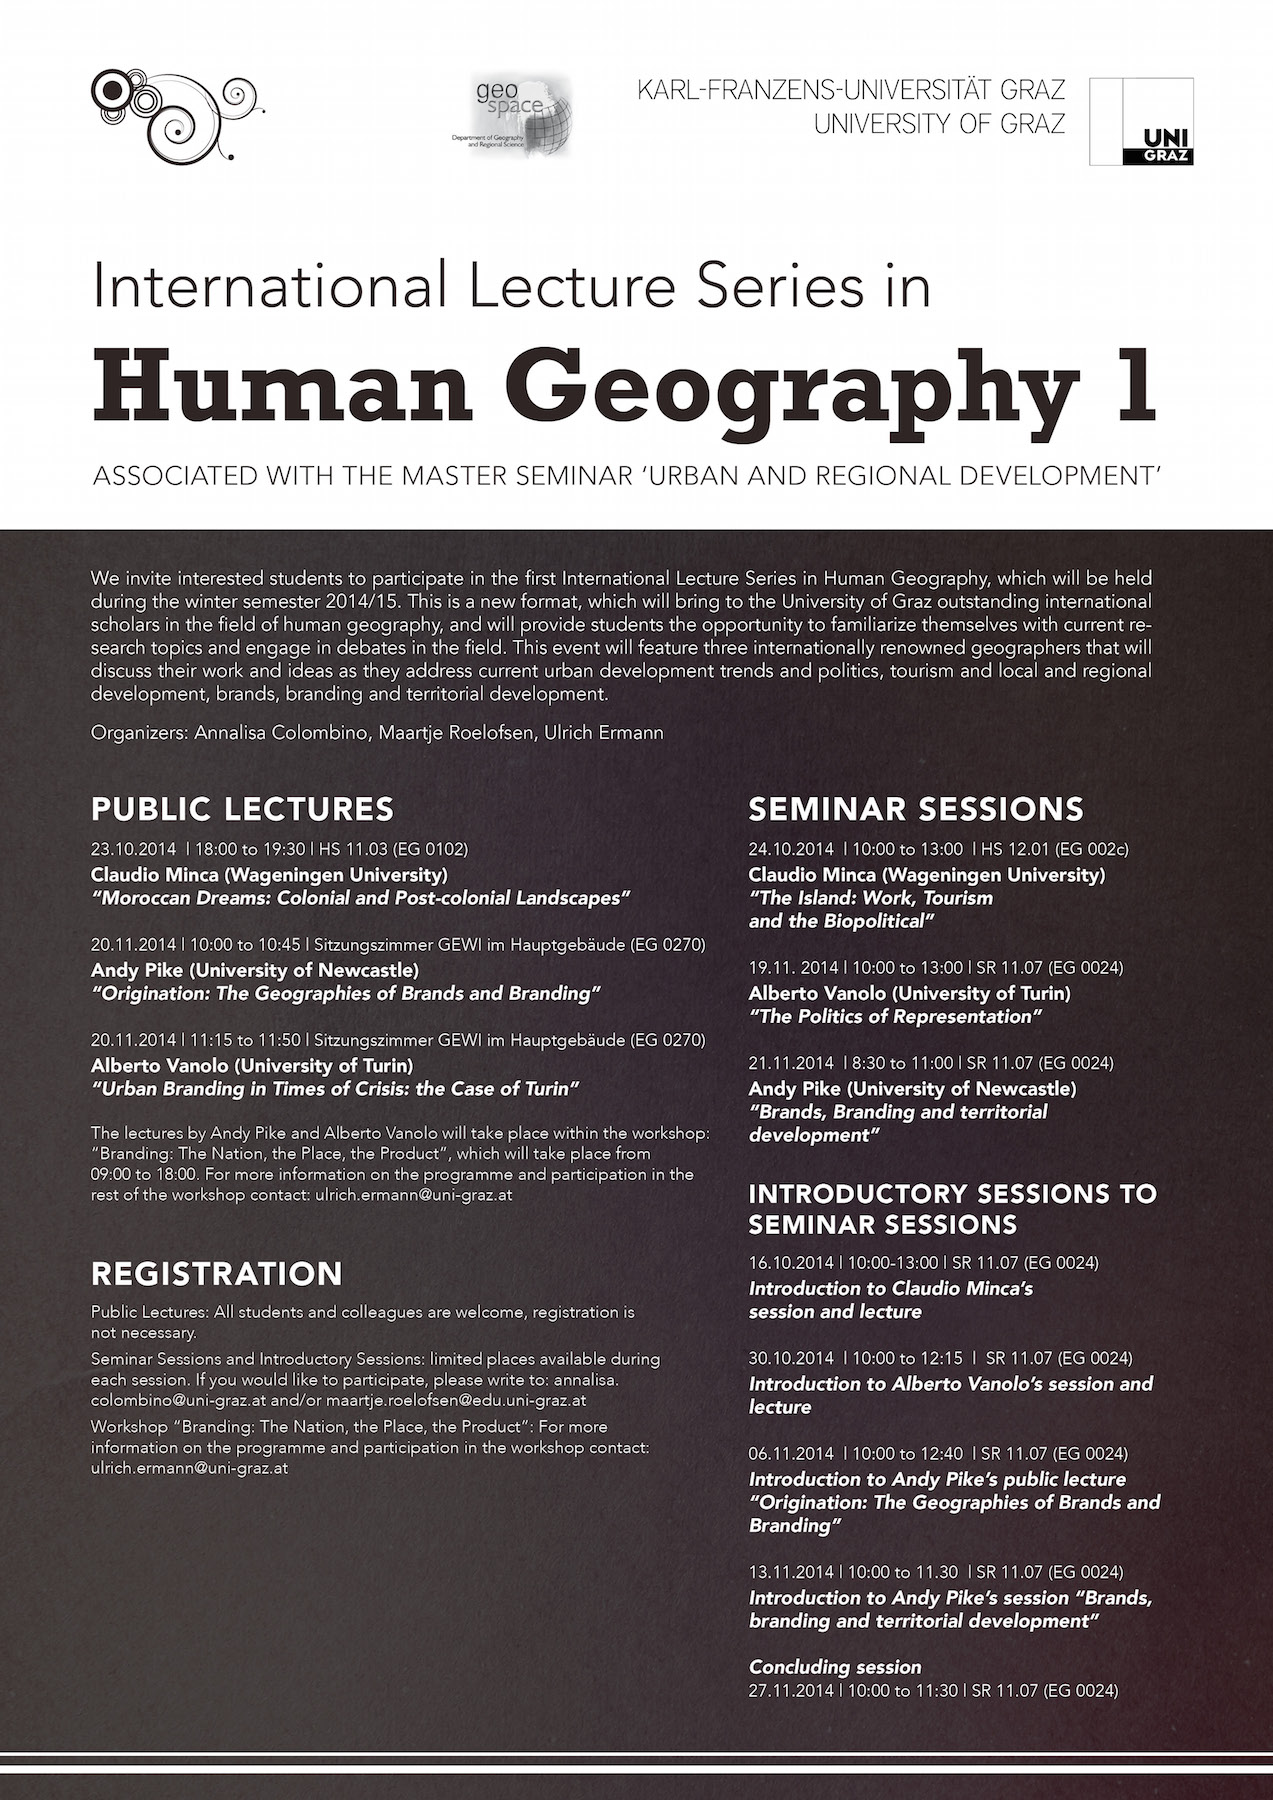 International Lecture Series in Human Geography 1